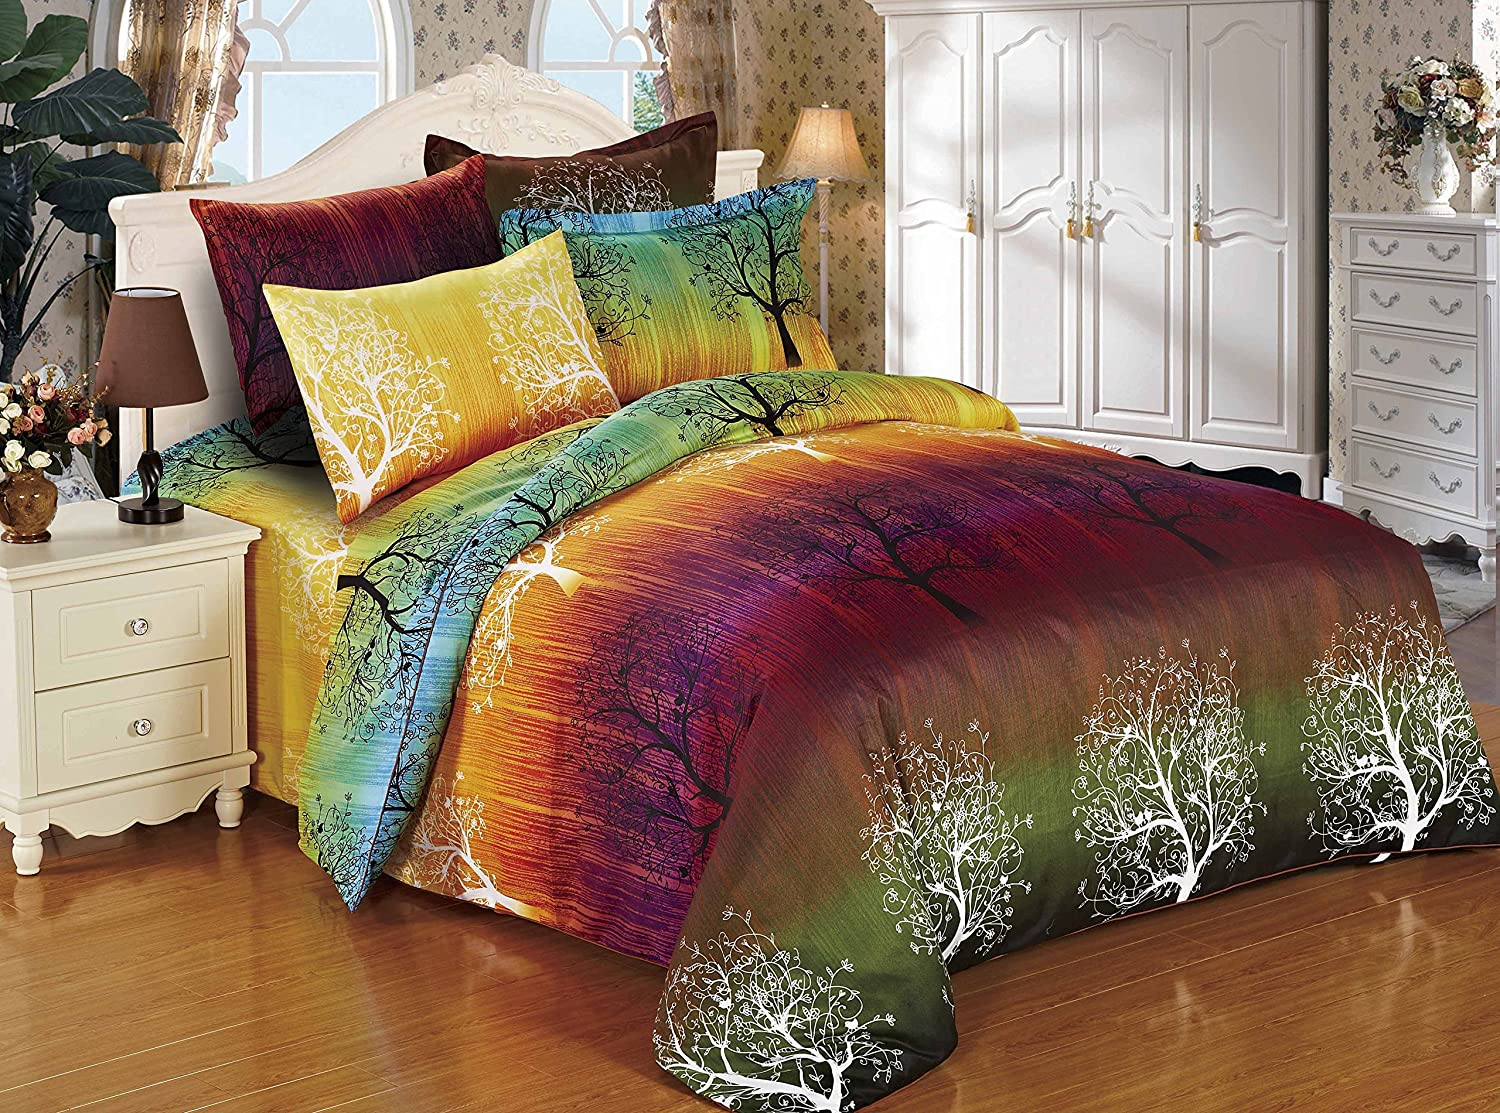 Swanson Beddings 4pc Rainbow Tree Duvet Cover Set: Duvet Cover, Fitted Sheet and Two Matching Pillowcases (Queen)